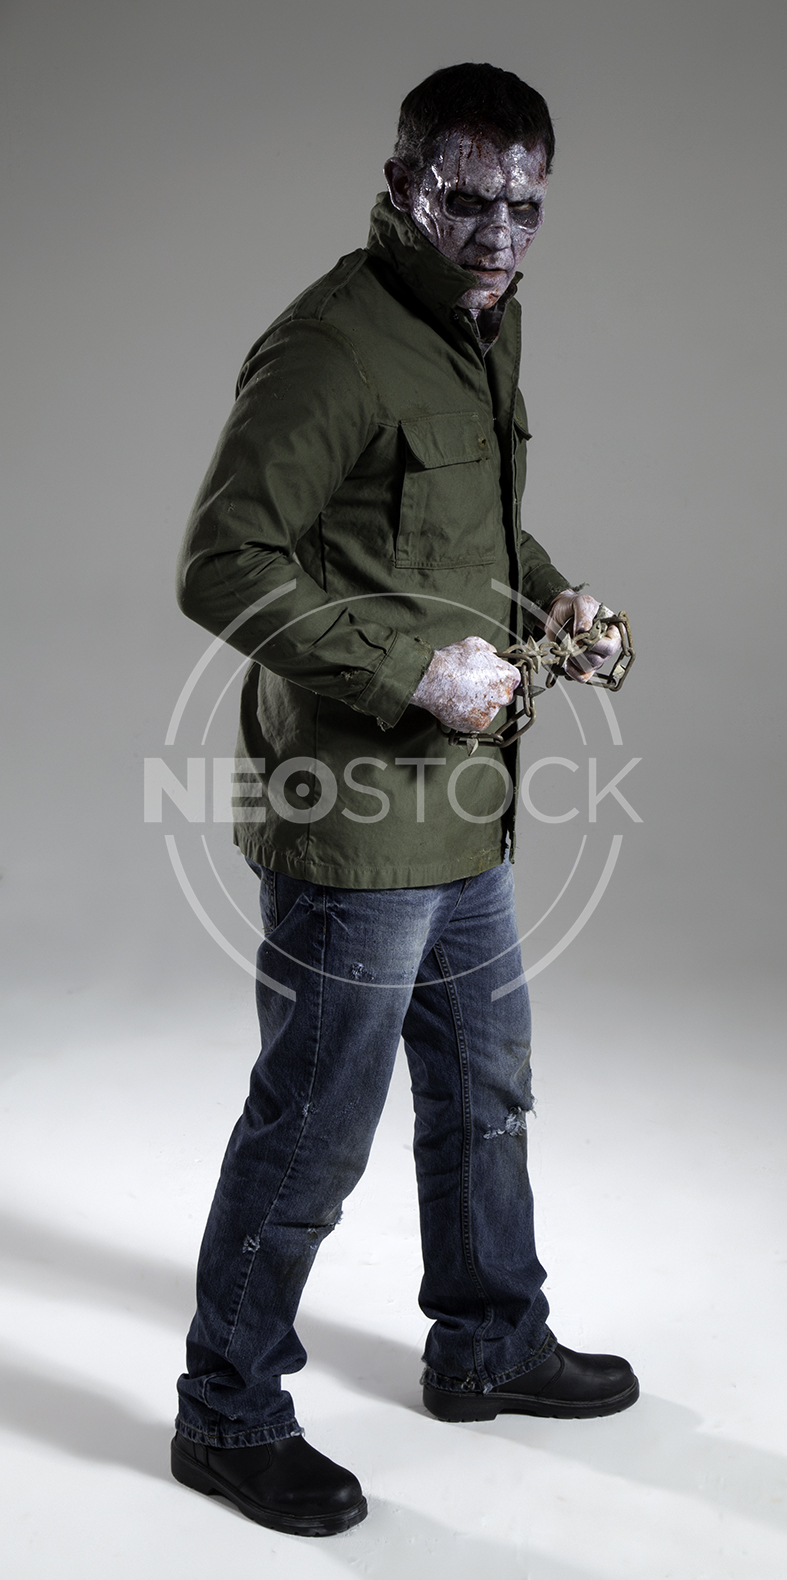 NeoStock - Lou 80s Slasher Horror - Stock Photography V